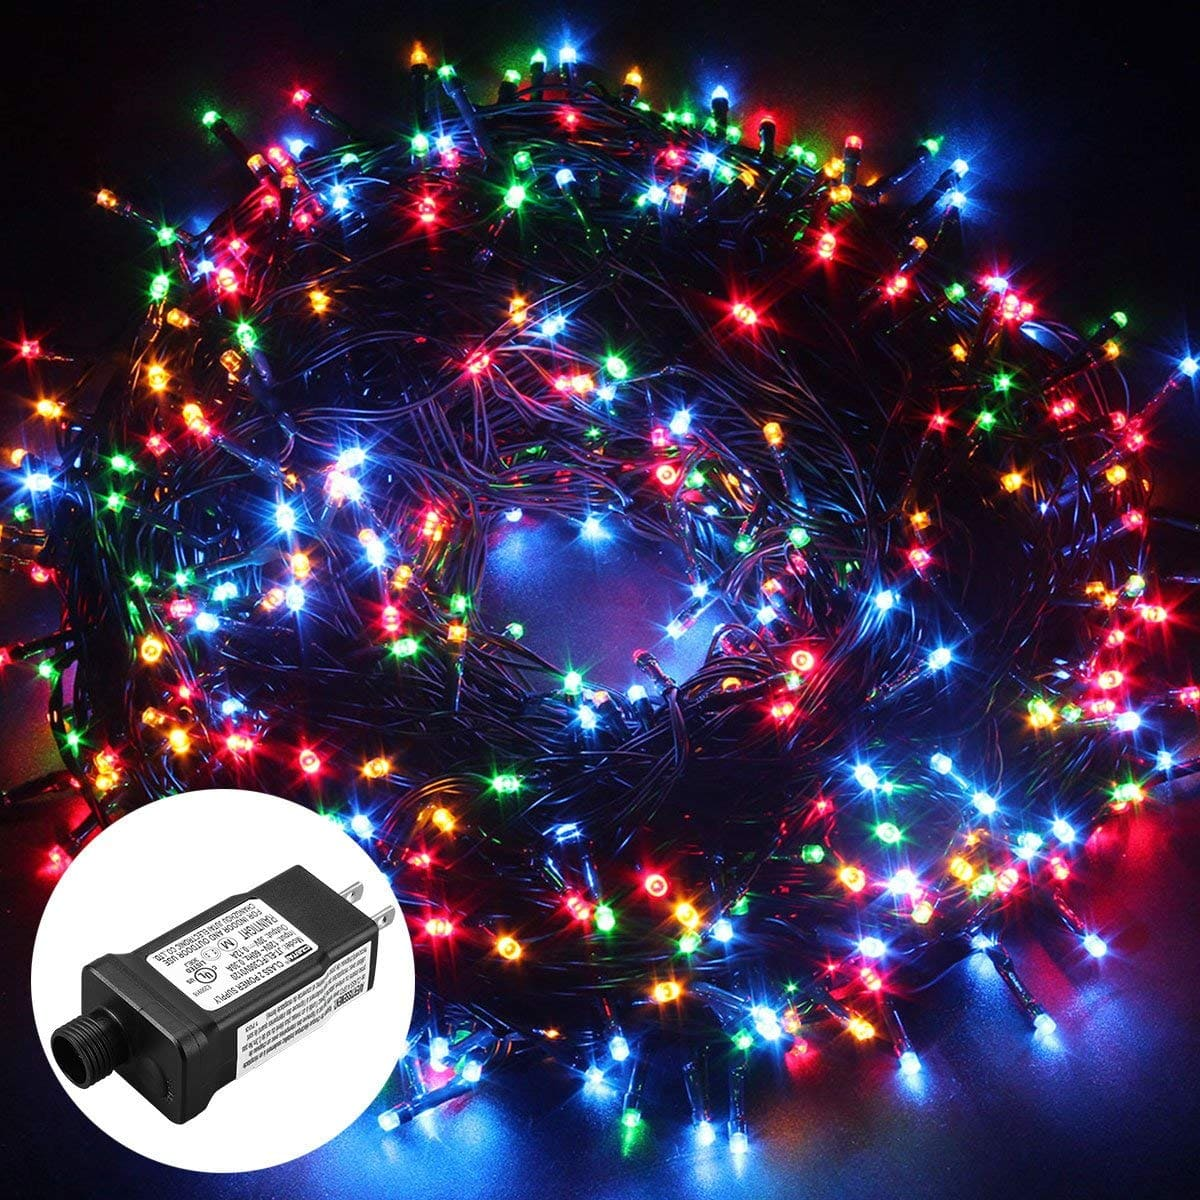 Low Voltage Outdoor Party Lights: Low Voltage 500 LEDs 100M/328FT Dimmable Fairy String